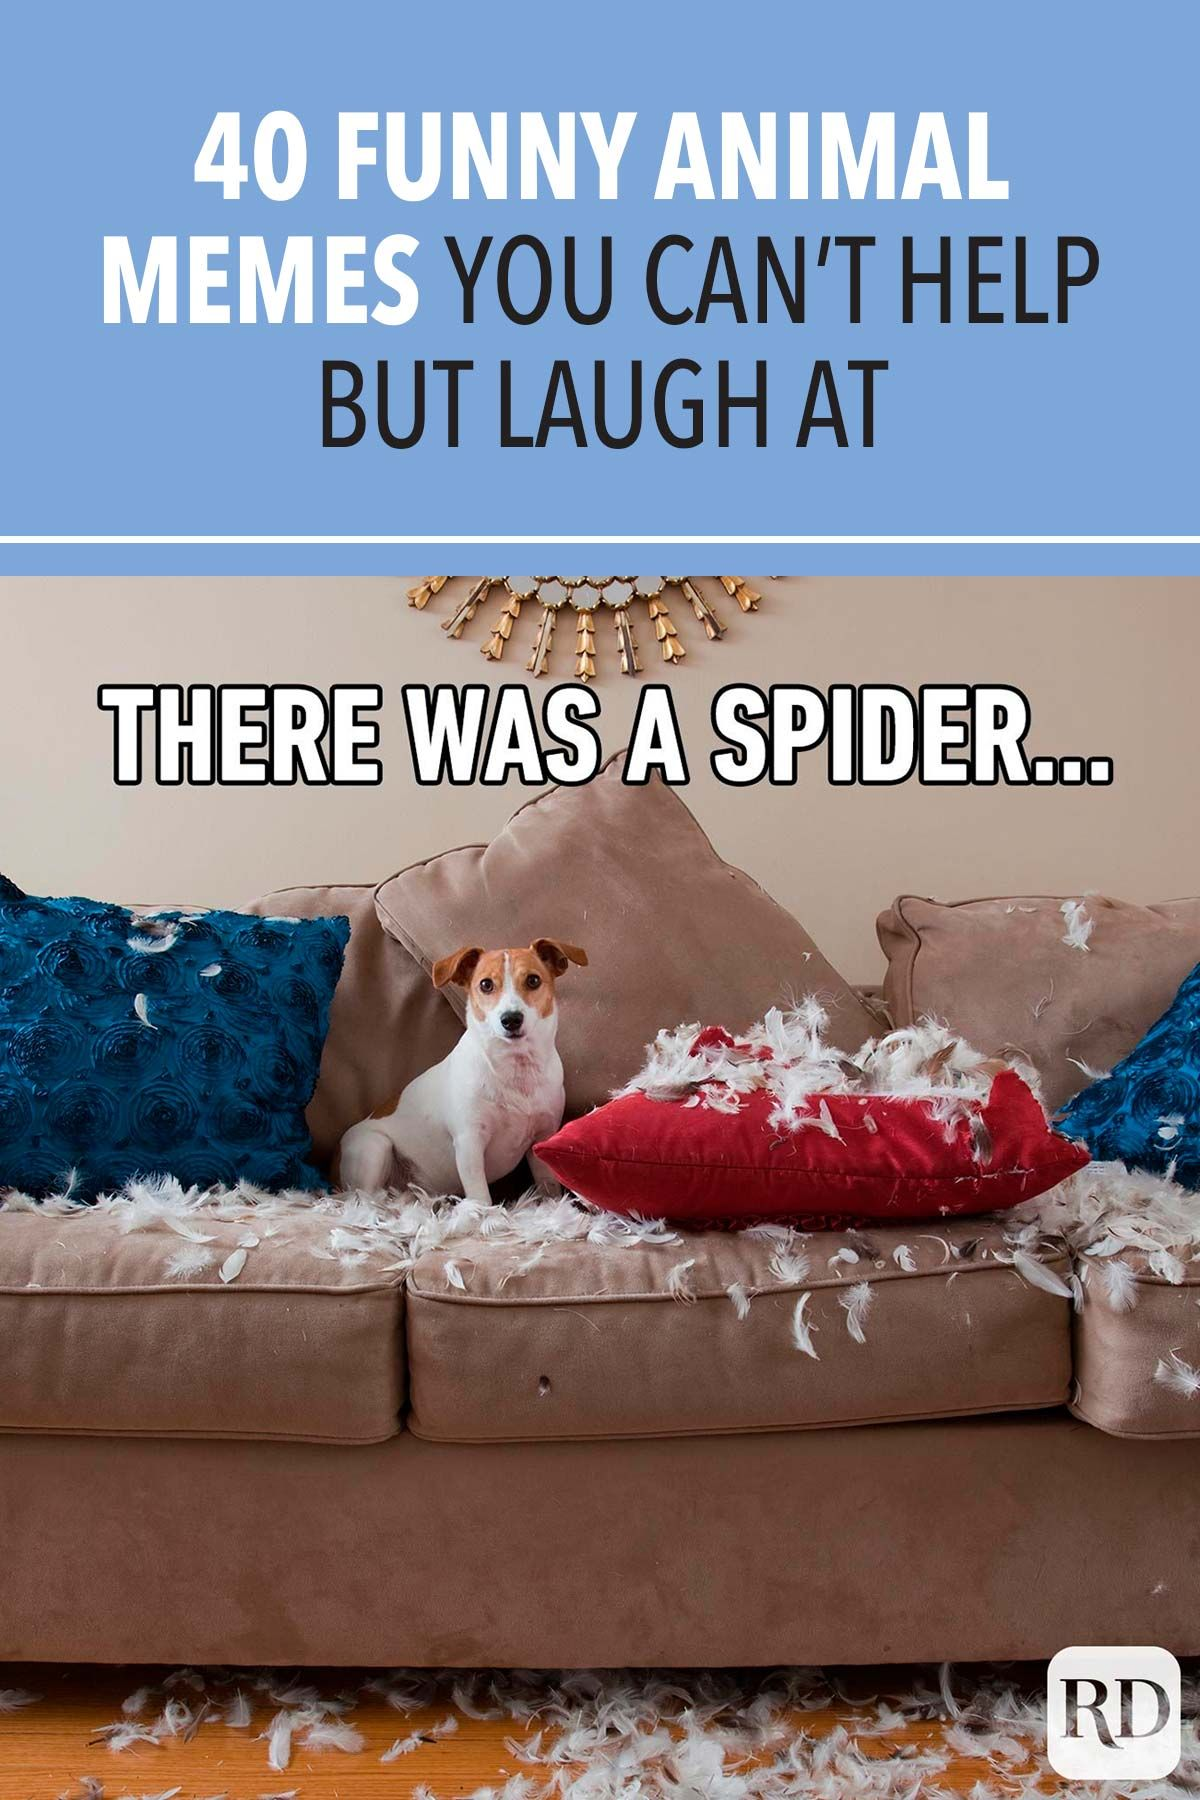 40 Funny Animal Memes You Can T Help But Laugh At In 2021 Funny Animal Memes Animal Memes Funny Animals